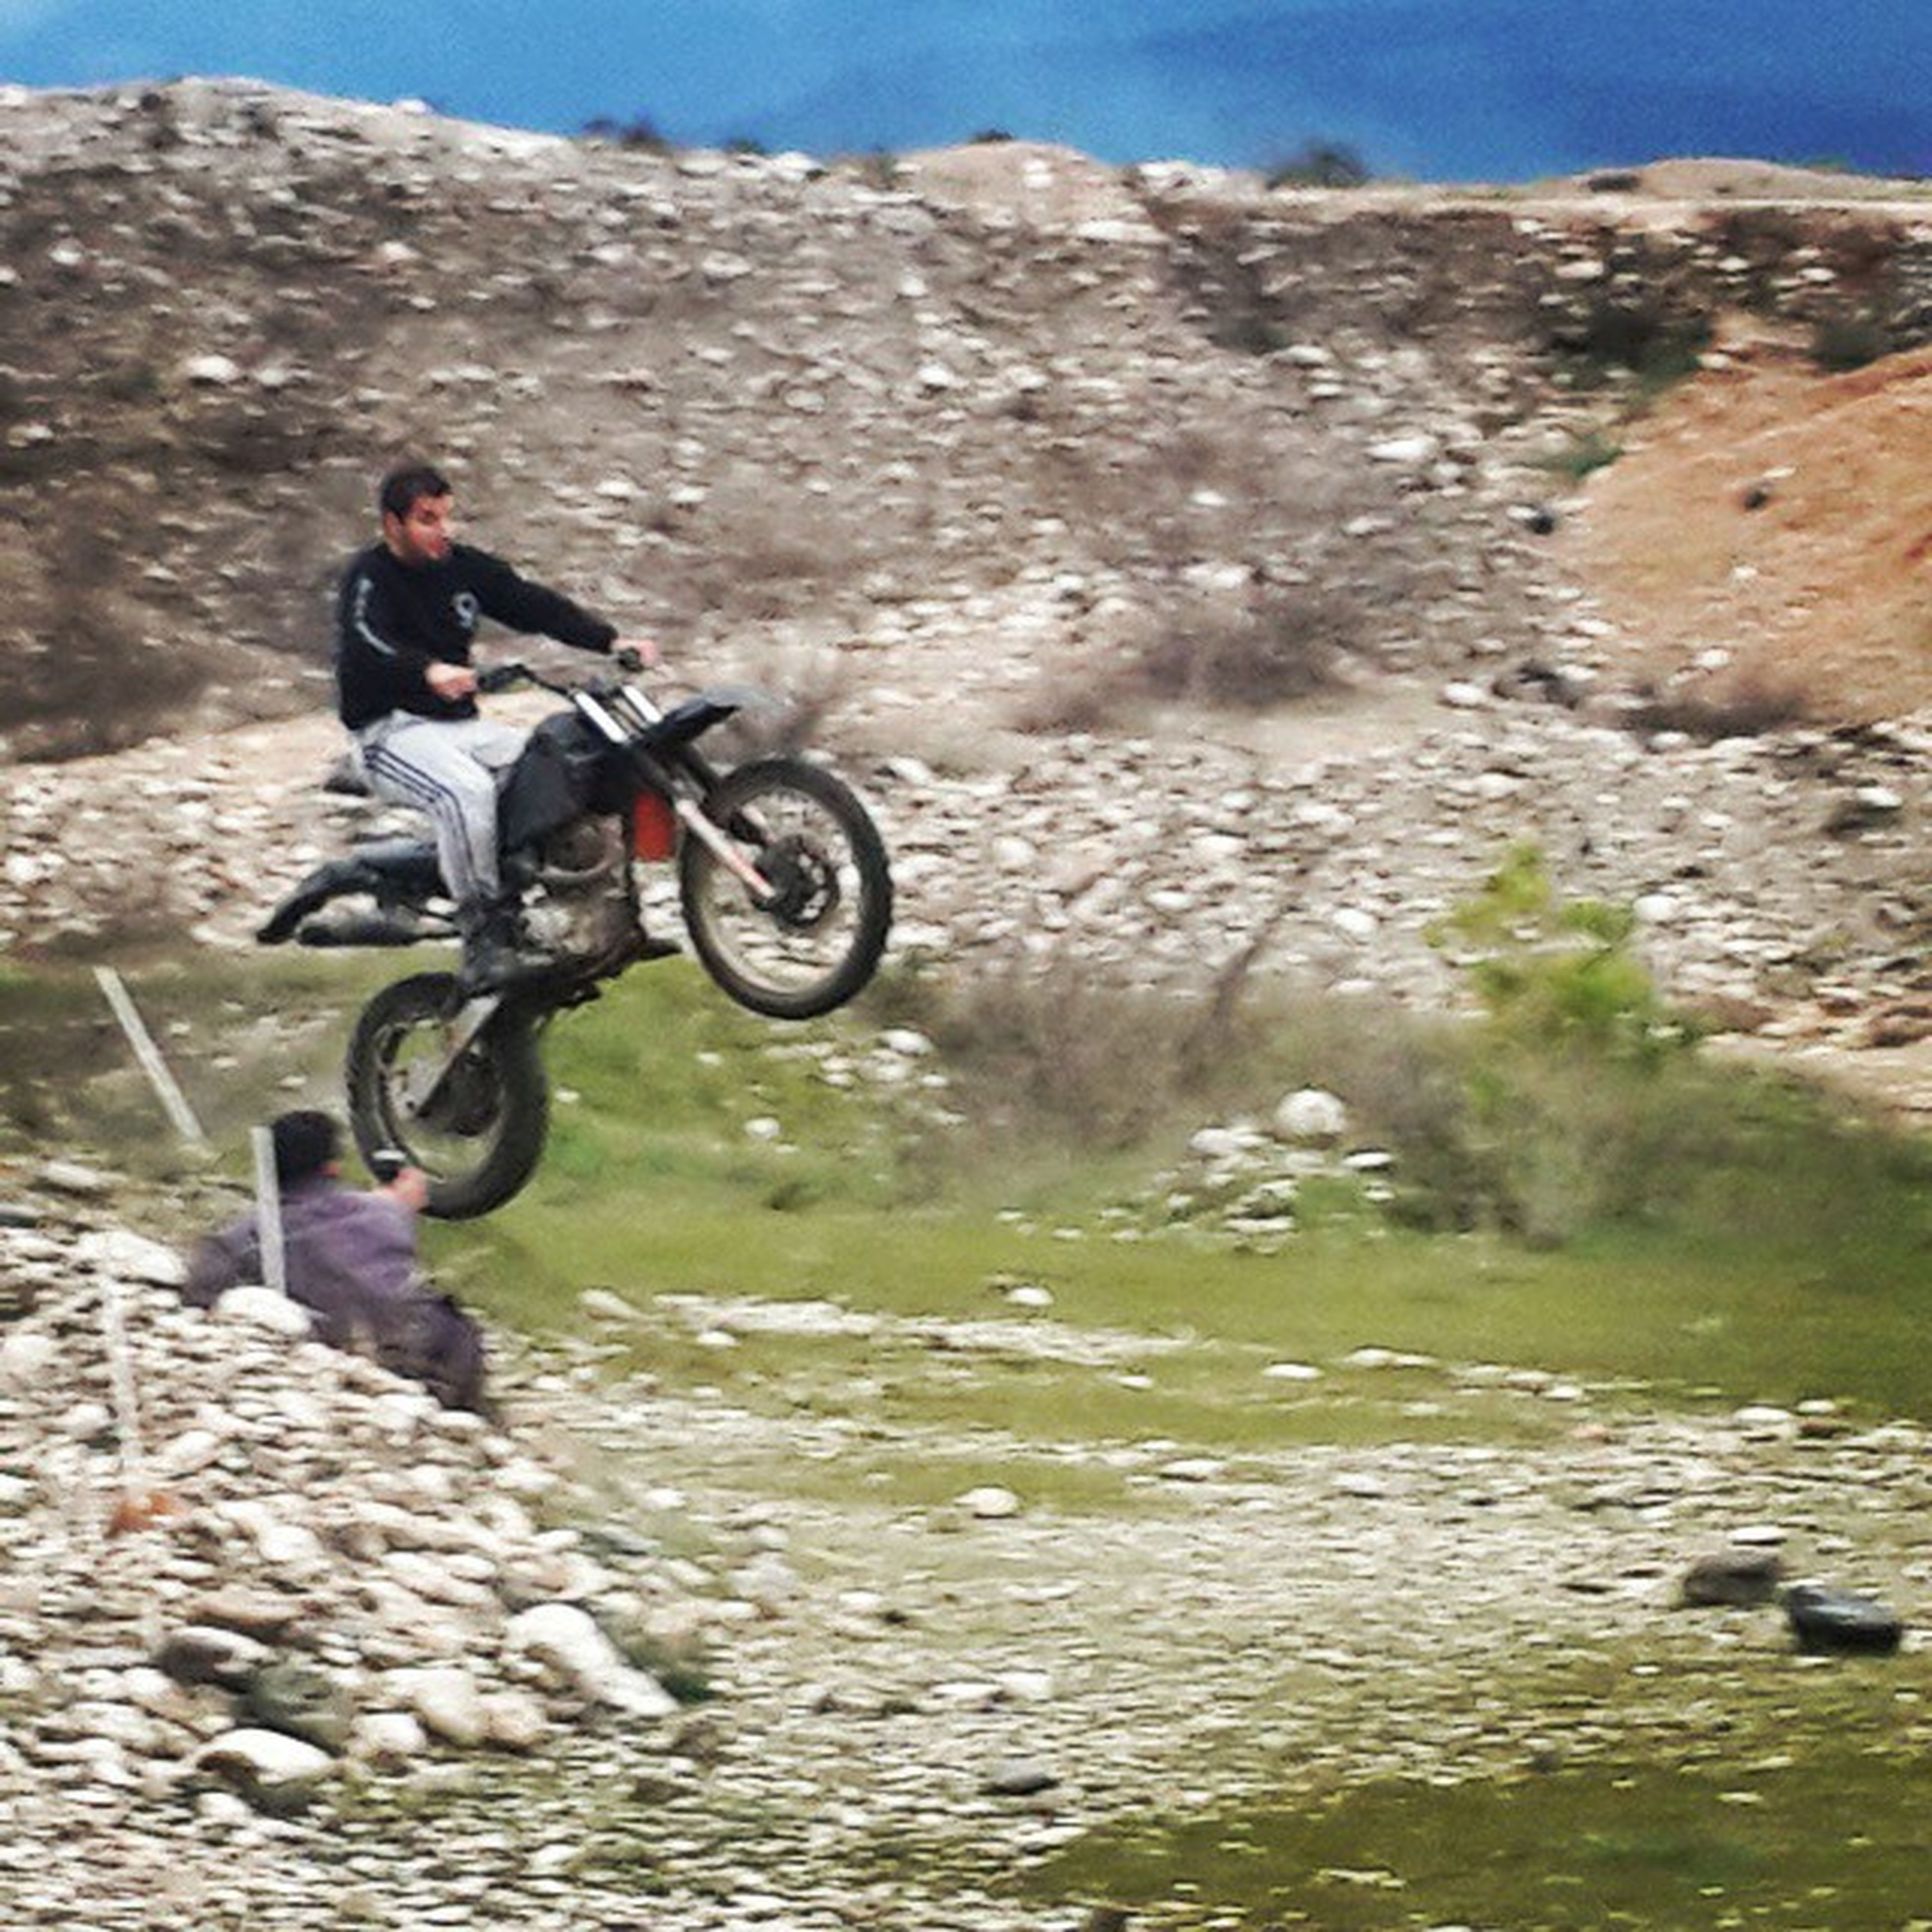 bicycle, riding, lifestyles, transportation, leisure activity, mode of transport, men, mountain, land vehicle, full length, adventure, cycling, travel, motion, extreme sports, on the move, day, sunlight